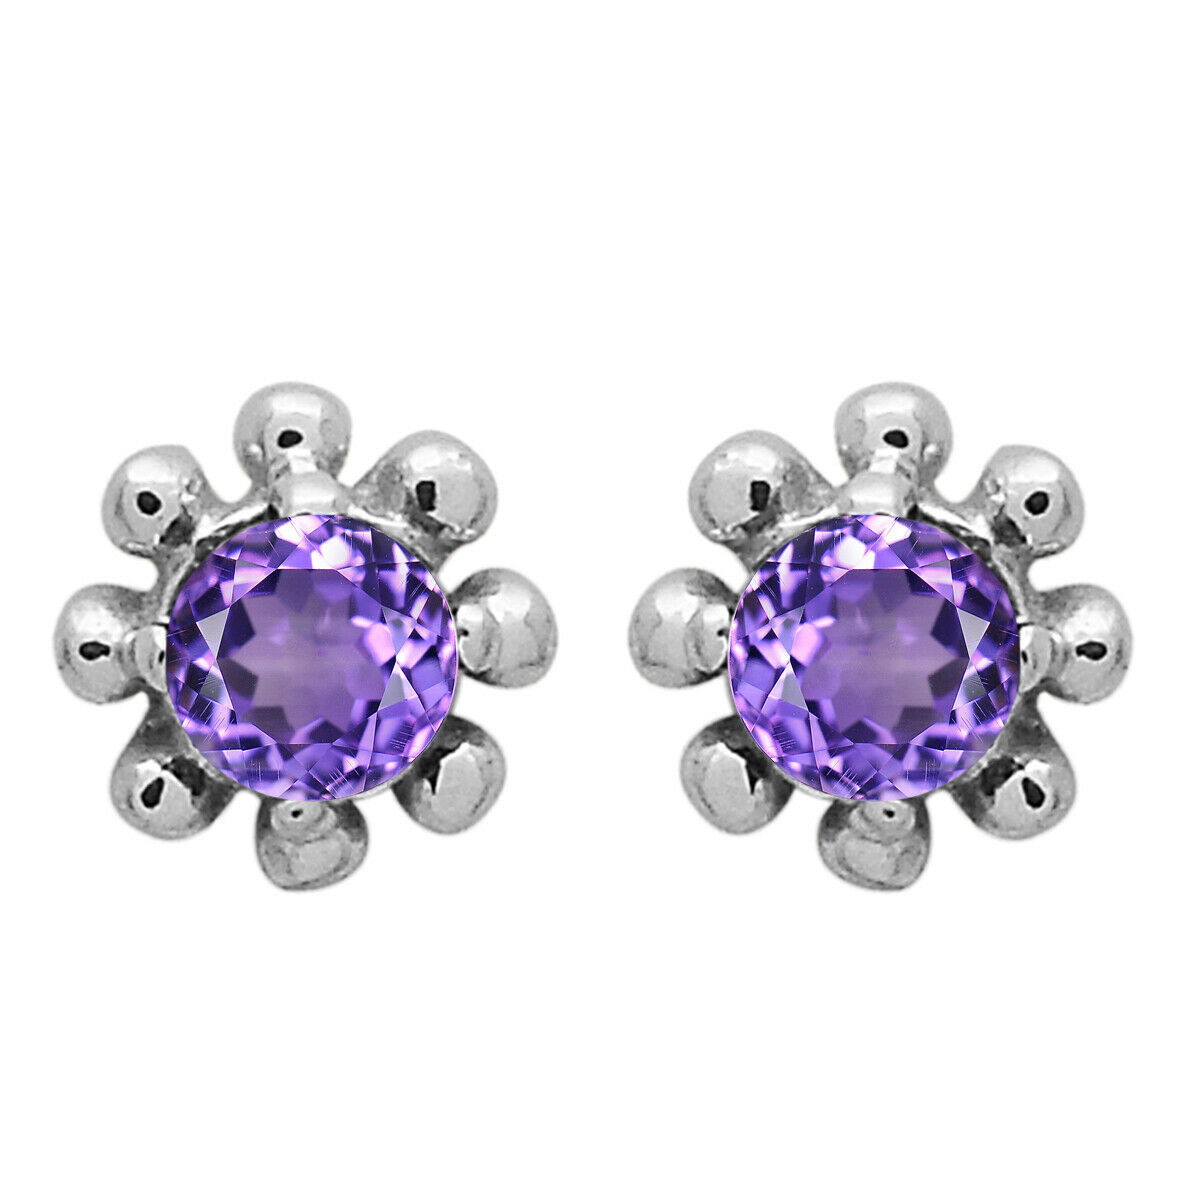 3 MM Round Natural Amethyst Flower Dainty Tiny Minimalist Stud Earring For Gift